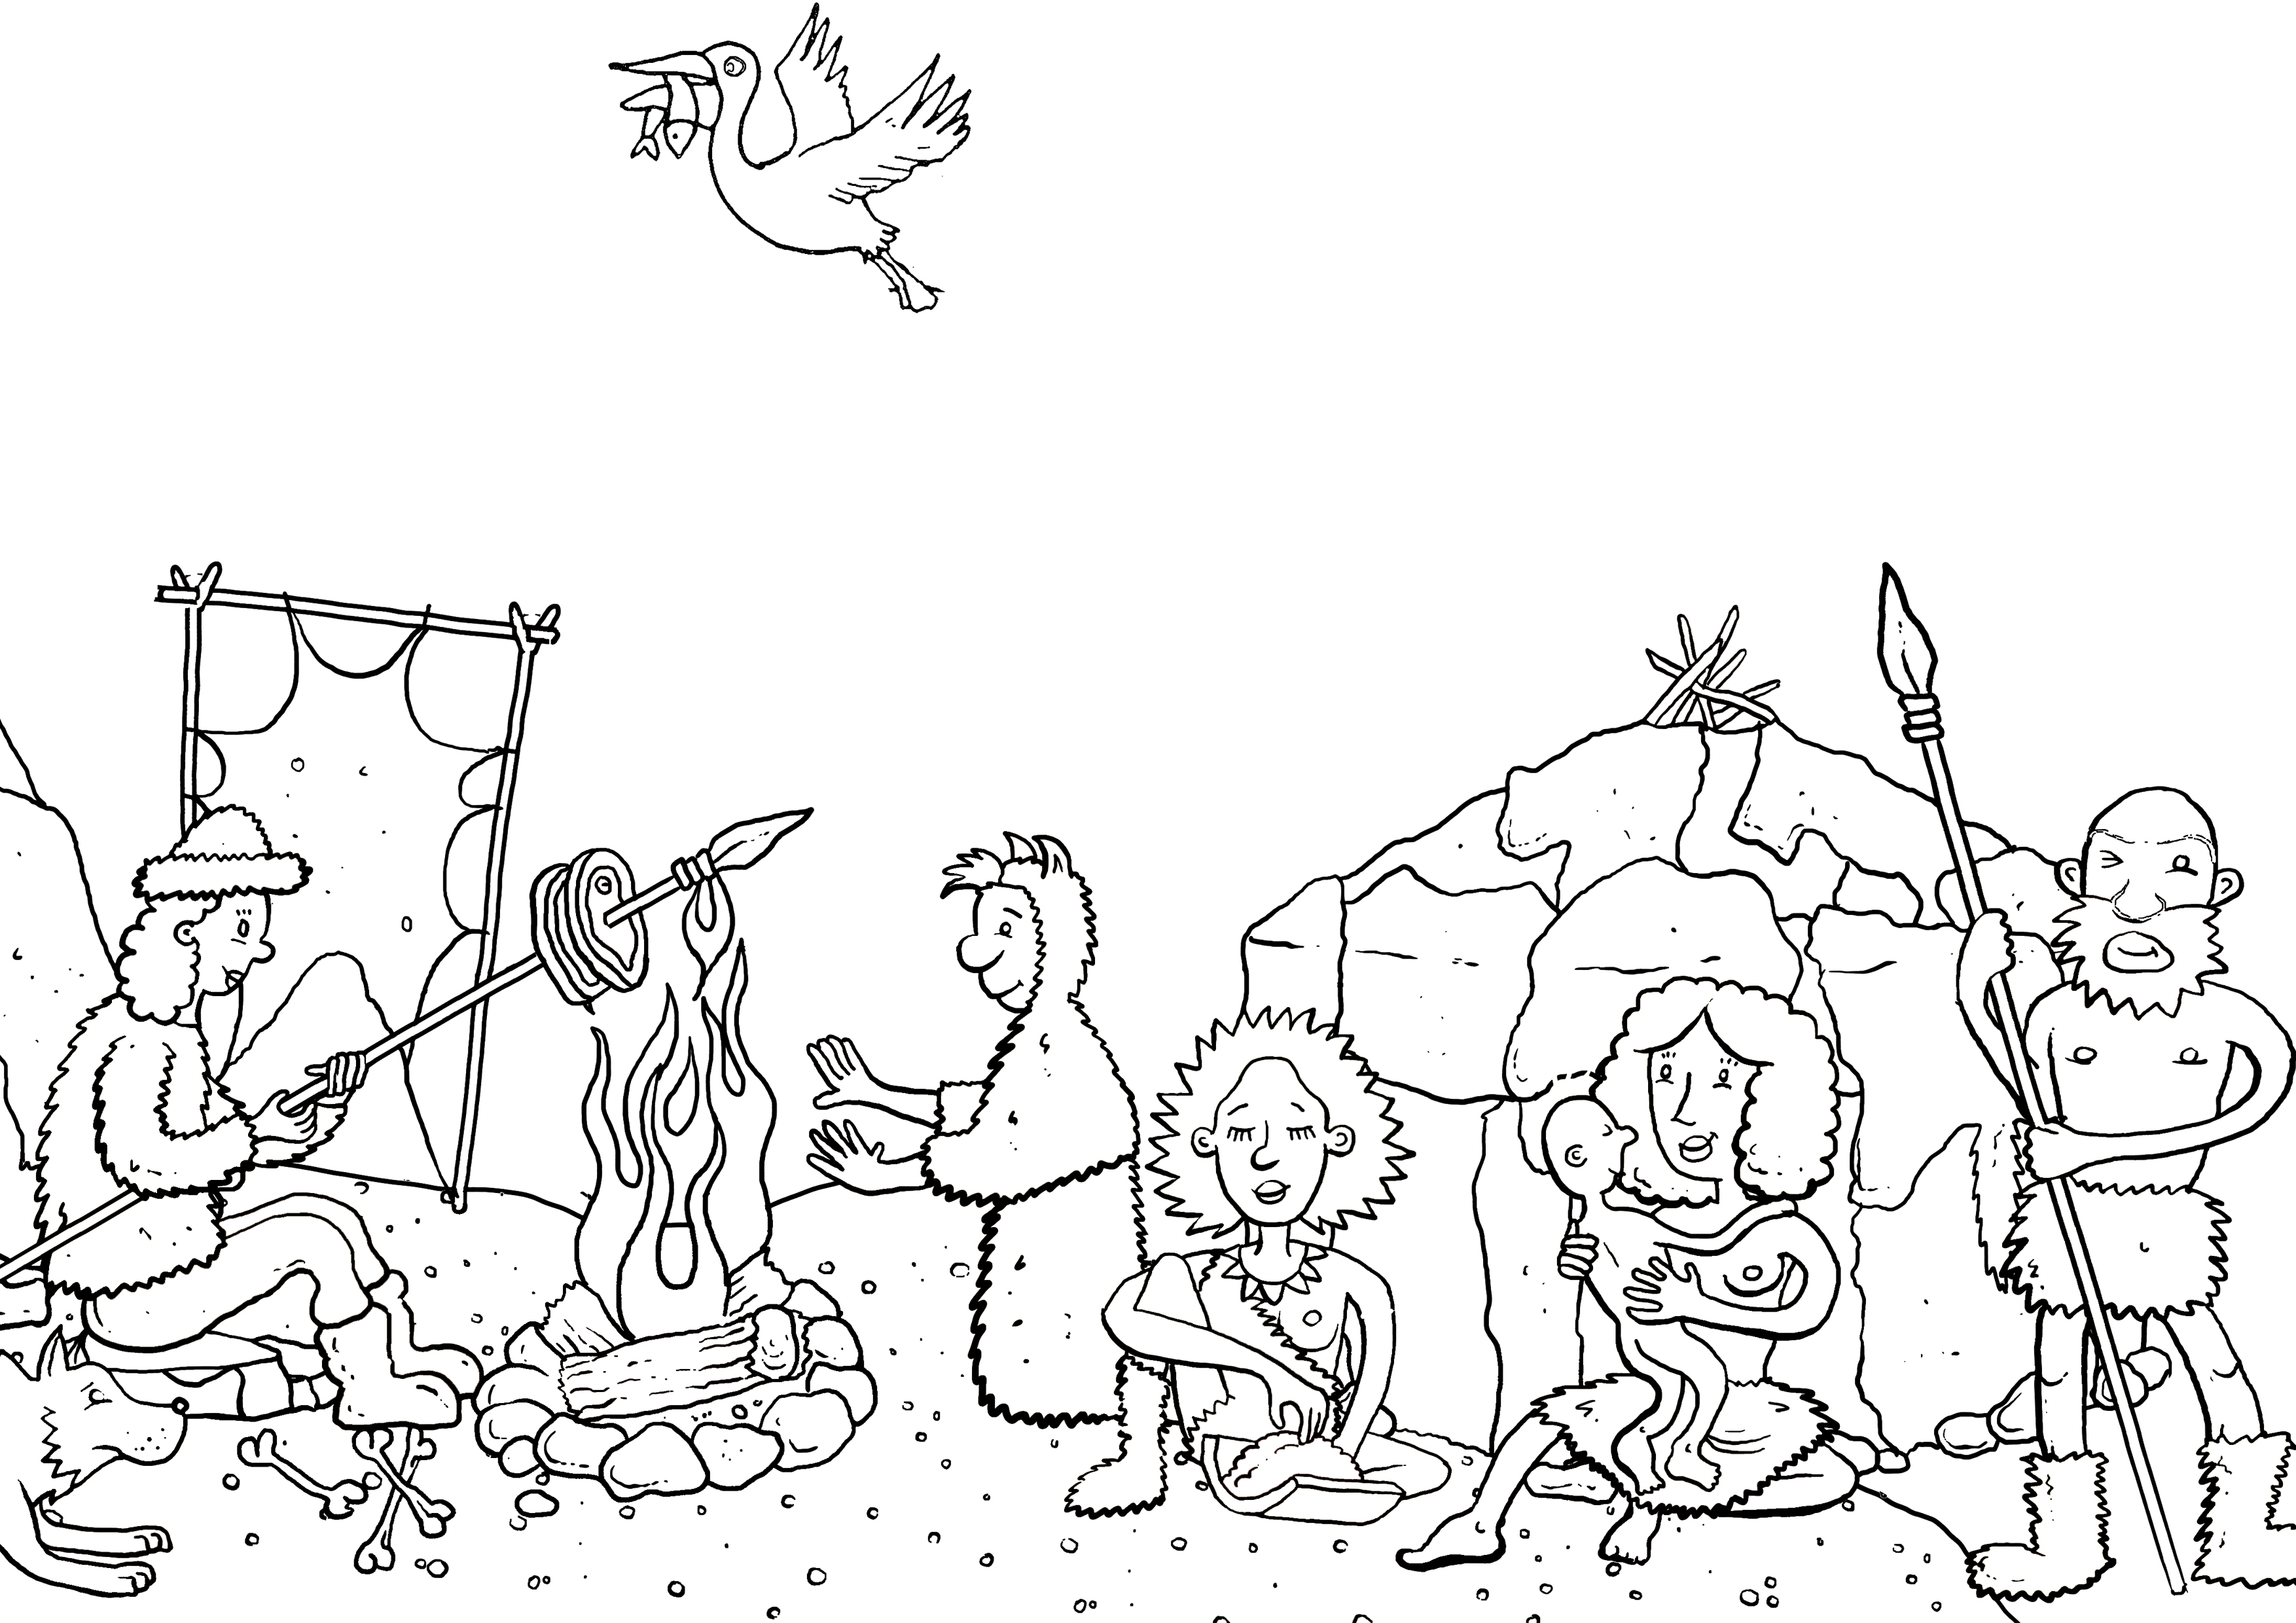 Ice Age Sid Continental Drift Coloring Page Sketch